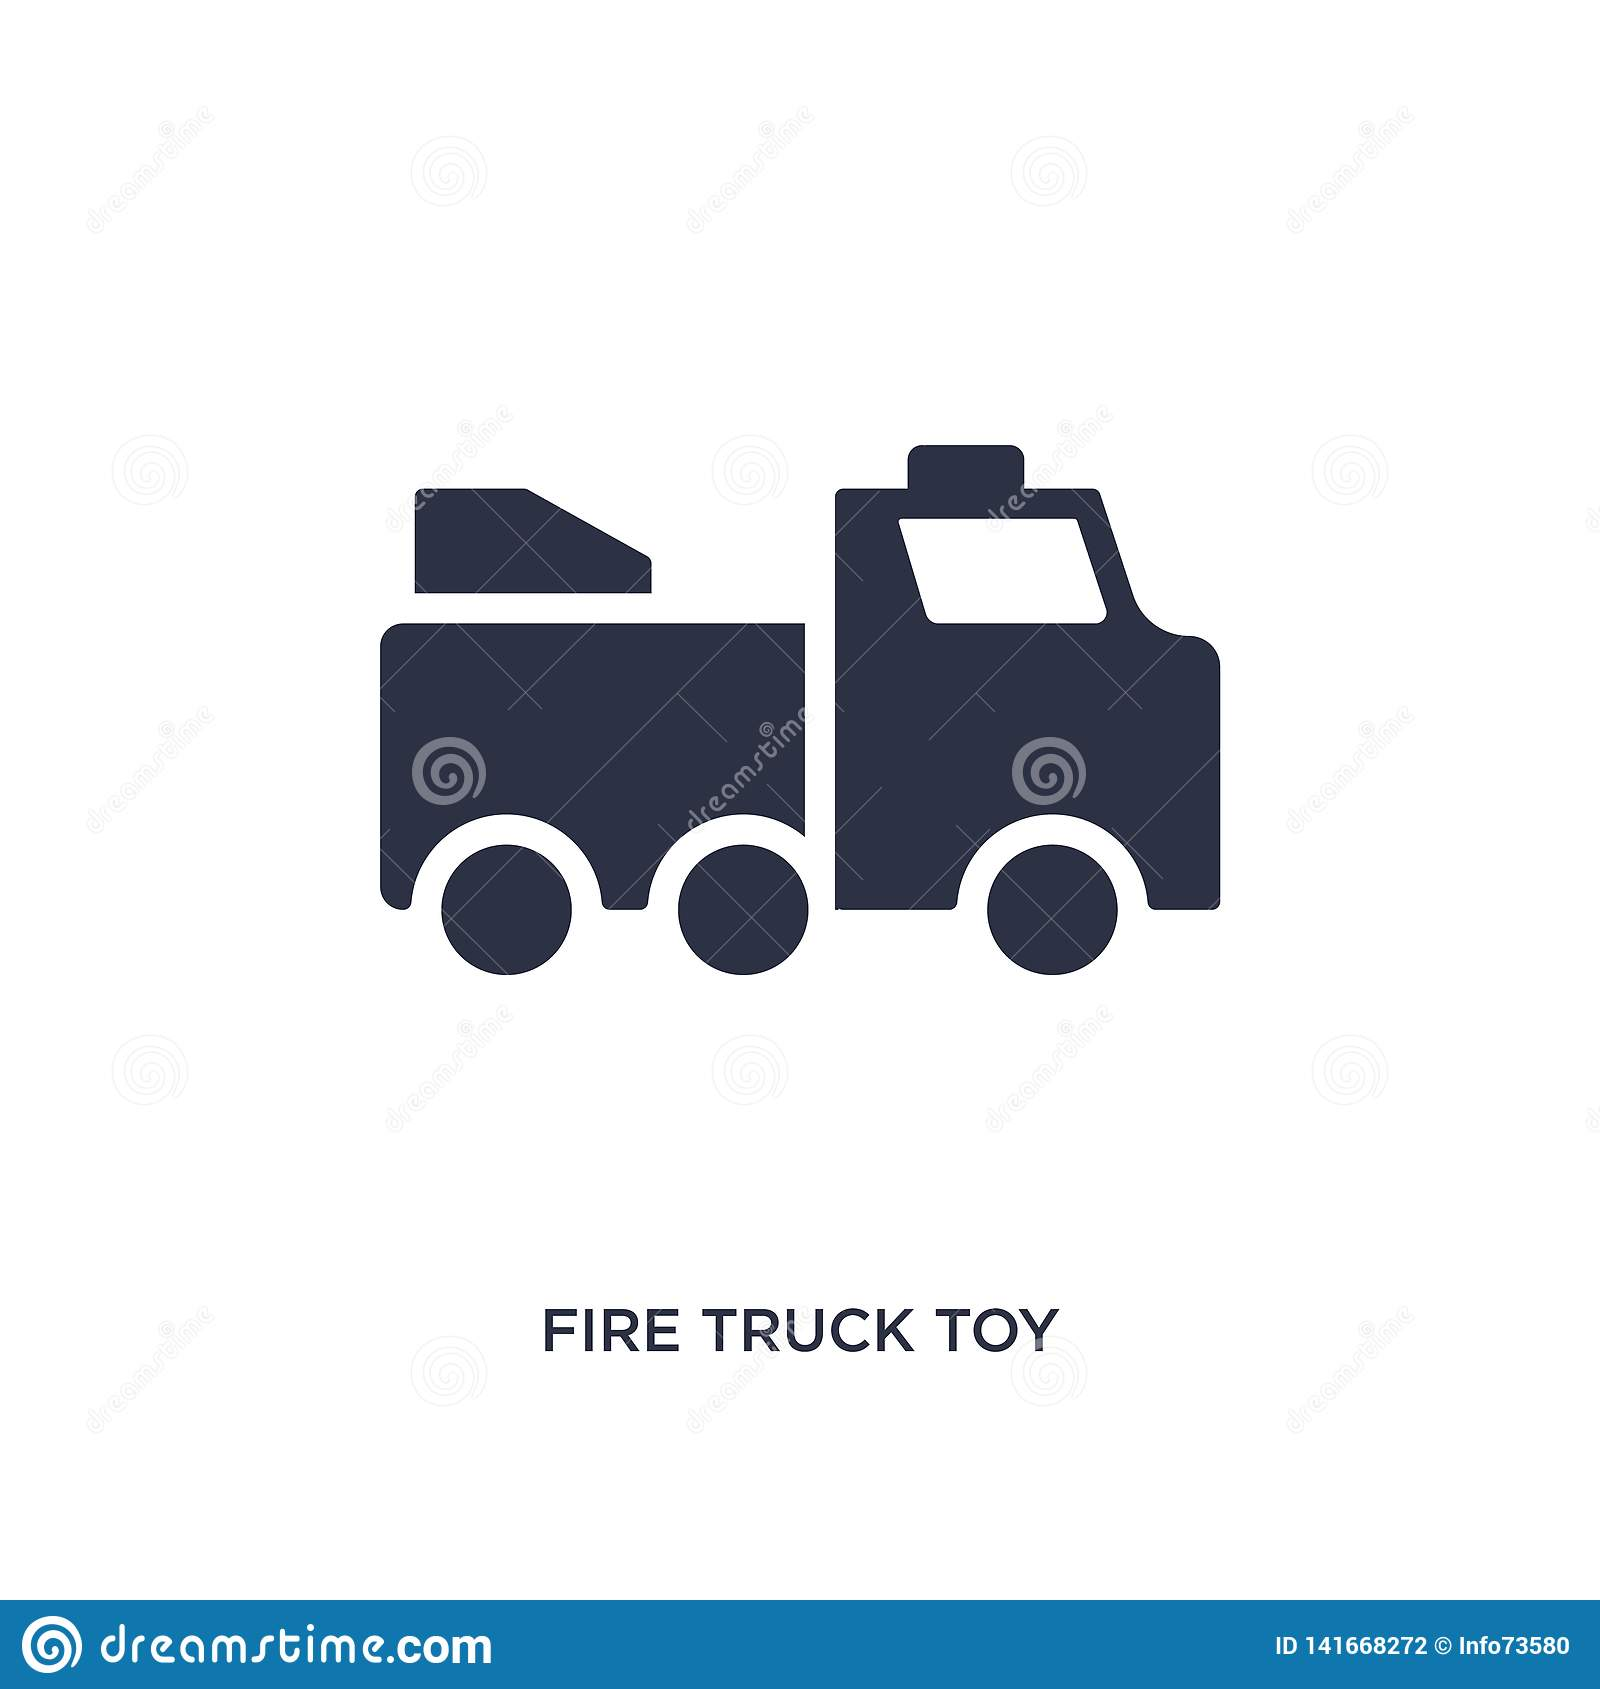 fire truck toy icon on white background. Simple element illustration from toys concept